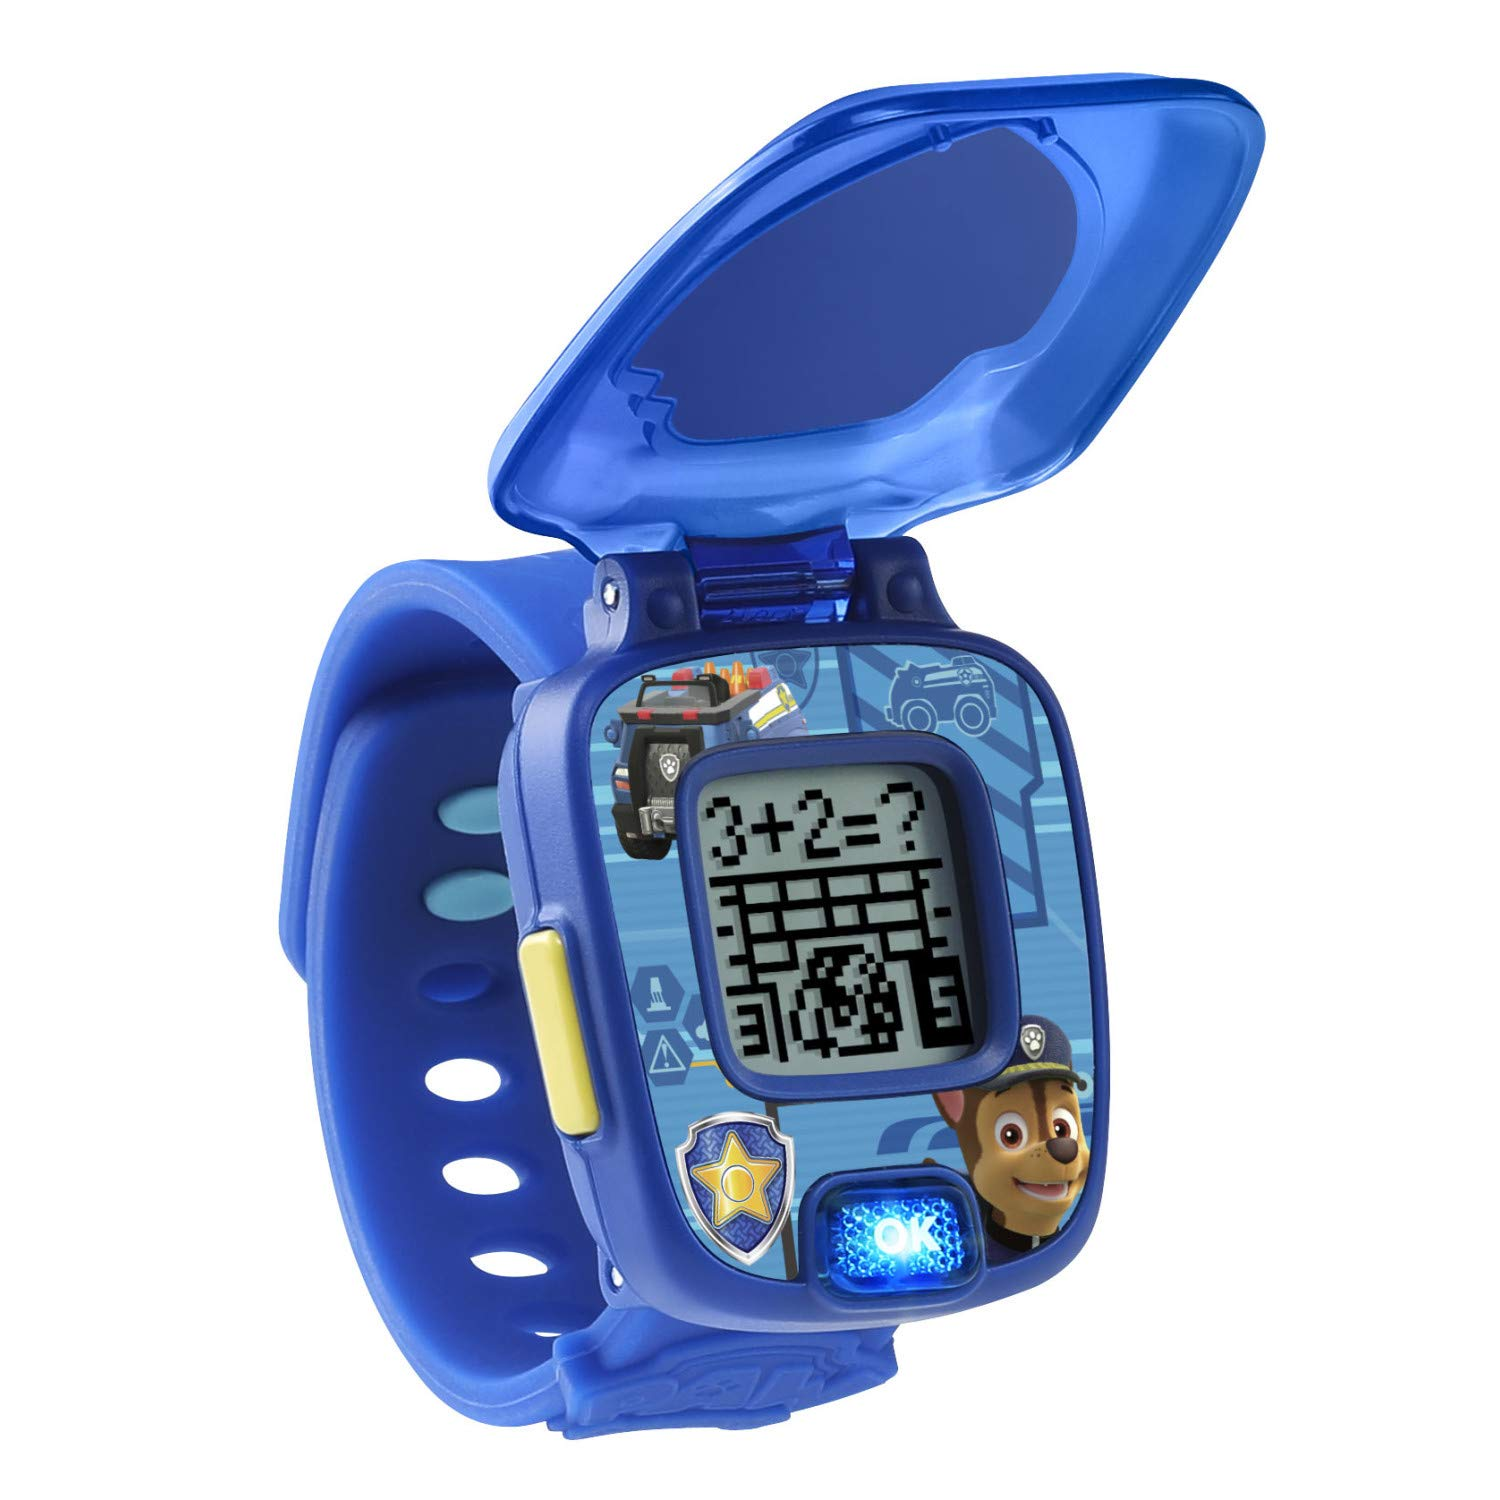 VTech Paw Patrol Chase Learning Watch, Blue by VTech (Image #4)